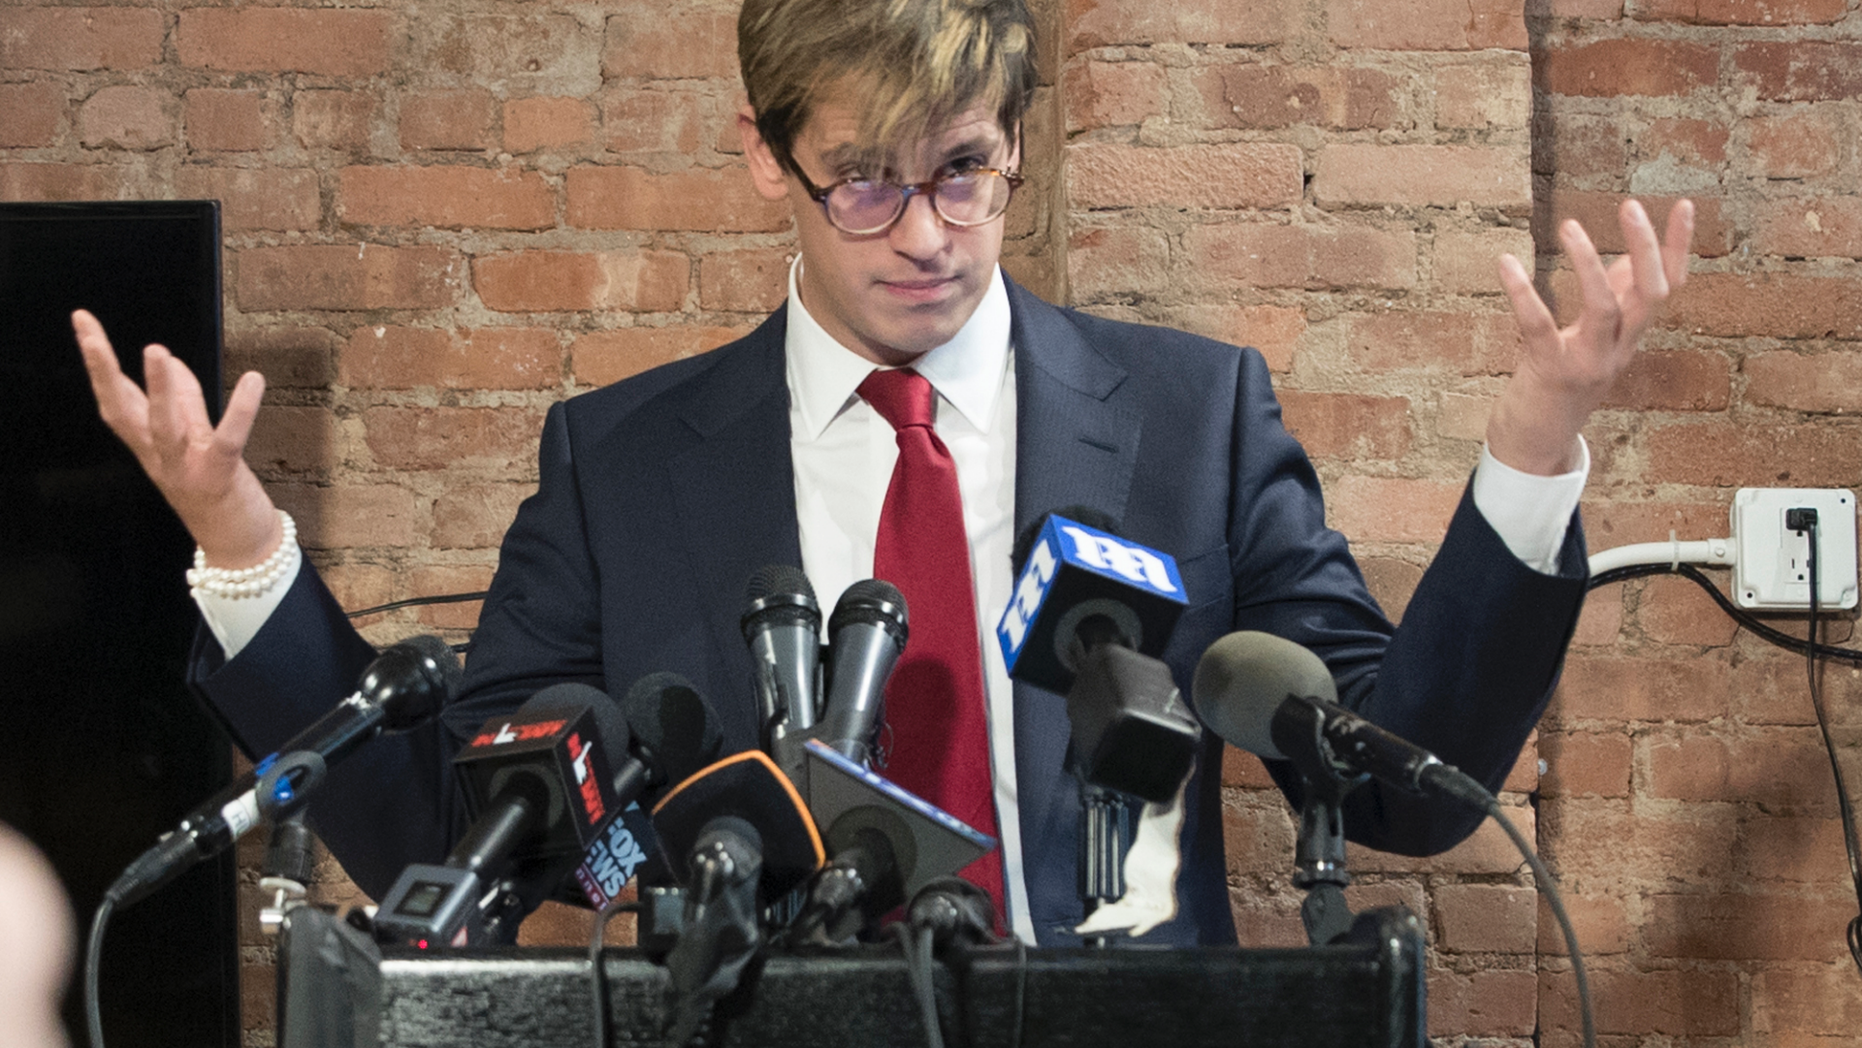 FILE- In this Feb. 21, 2017 file photo, Milo Yiannopoulos speaks during a news conference in New York. Citing safety concerns, New York University has postponed a speech by the right-wing provocateur that was scheduled for Halloween night, Wednesday, Oct. 31, 2018. (AP Photo/Mary Altaffer, File)